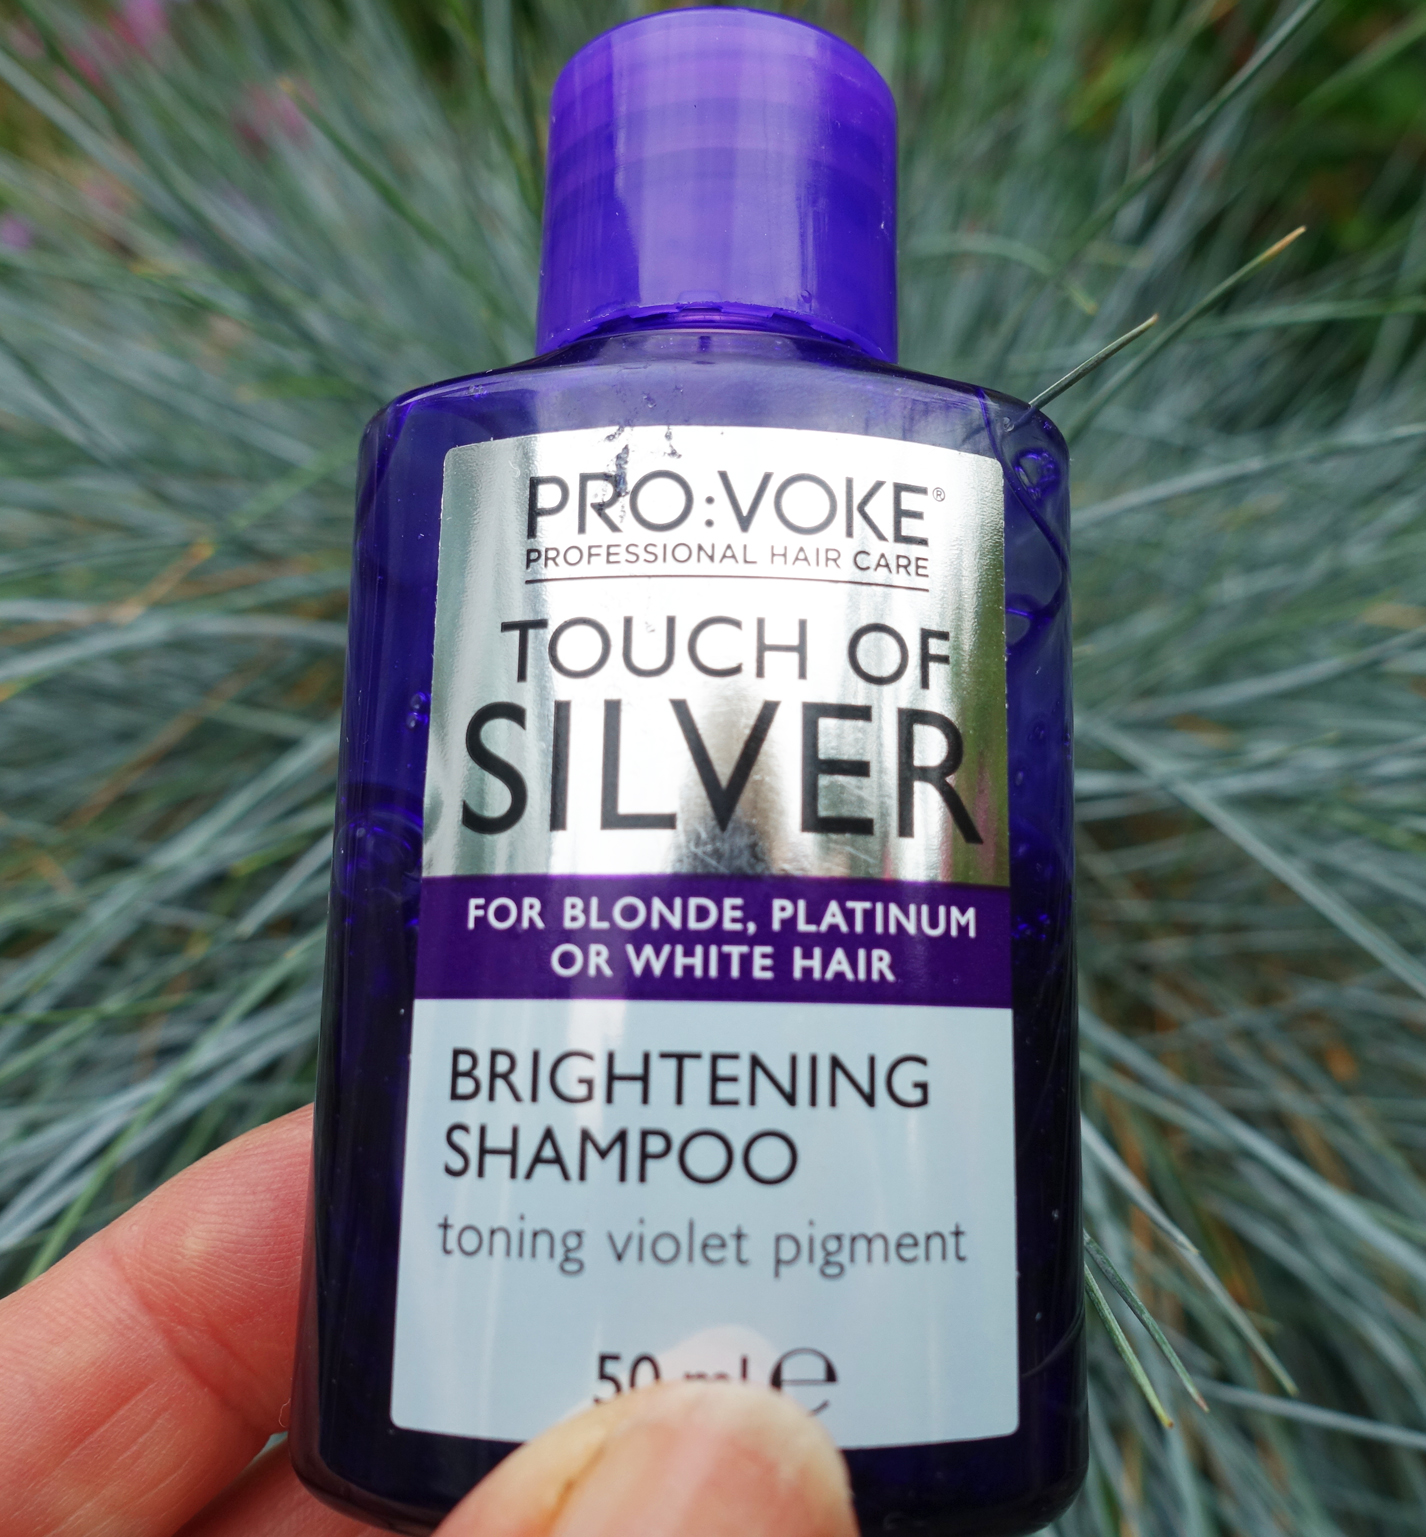 A cheap shampoo that delivers: Touch of Silver shampoo is reviewed by Is This Mutton? and works beautifully to neutralise brassy tones in highlighted hair